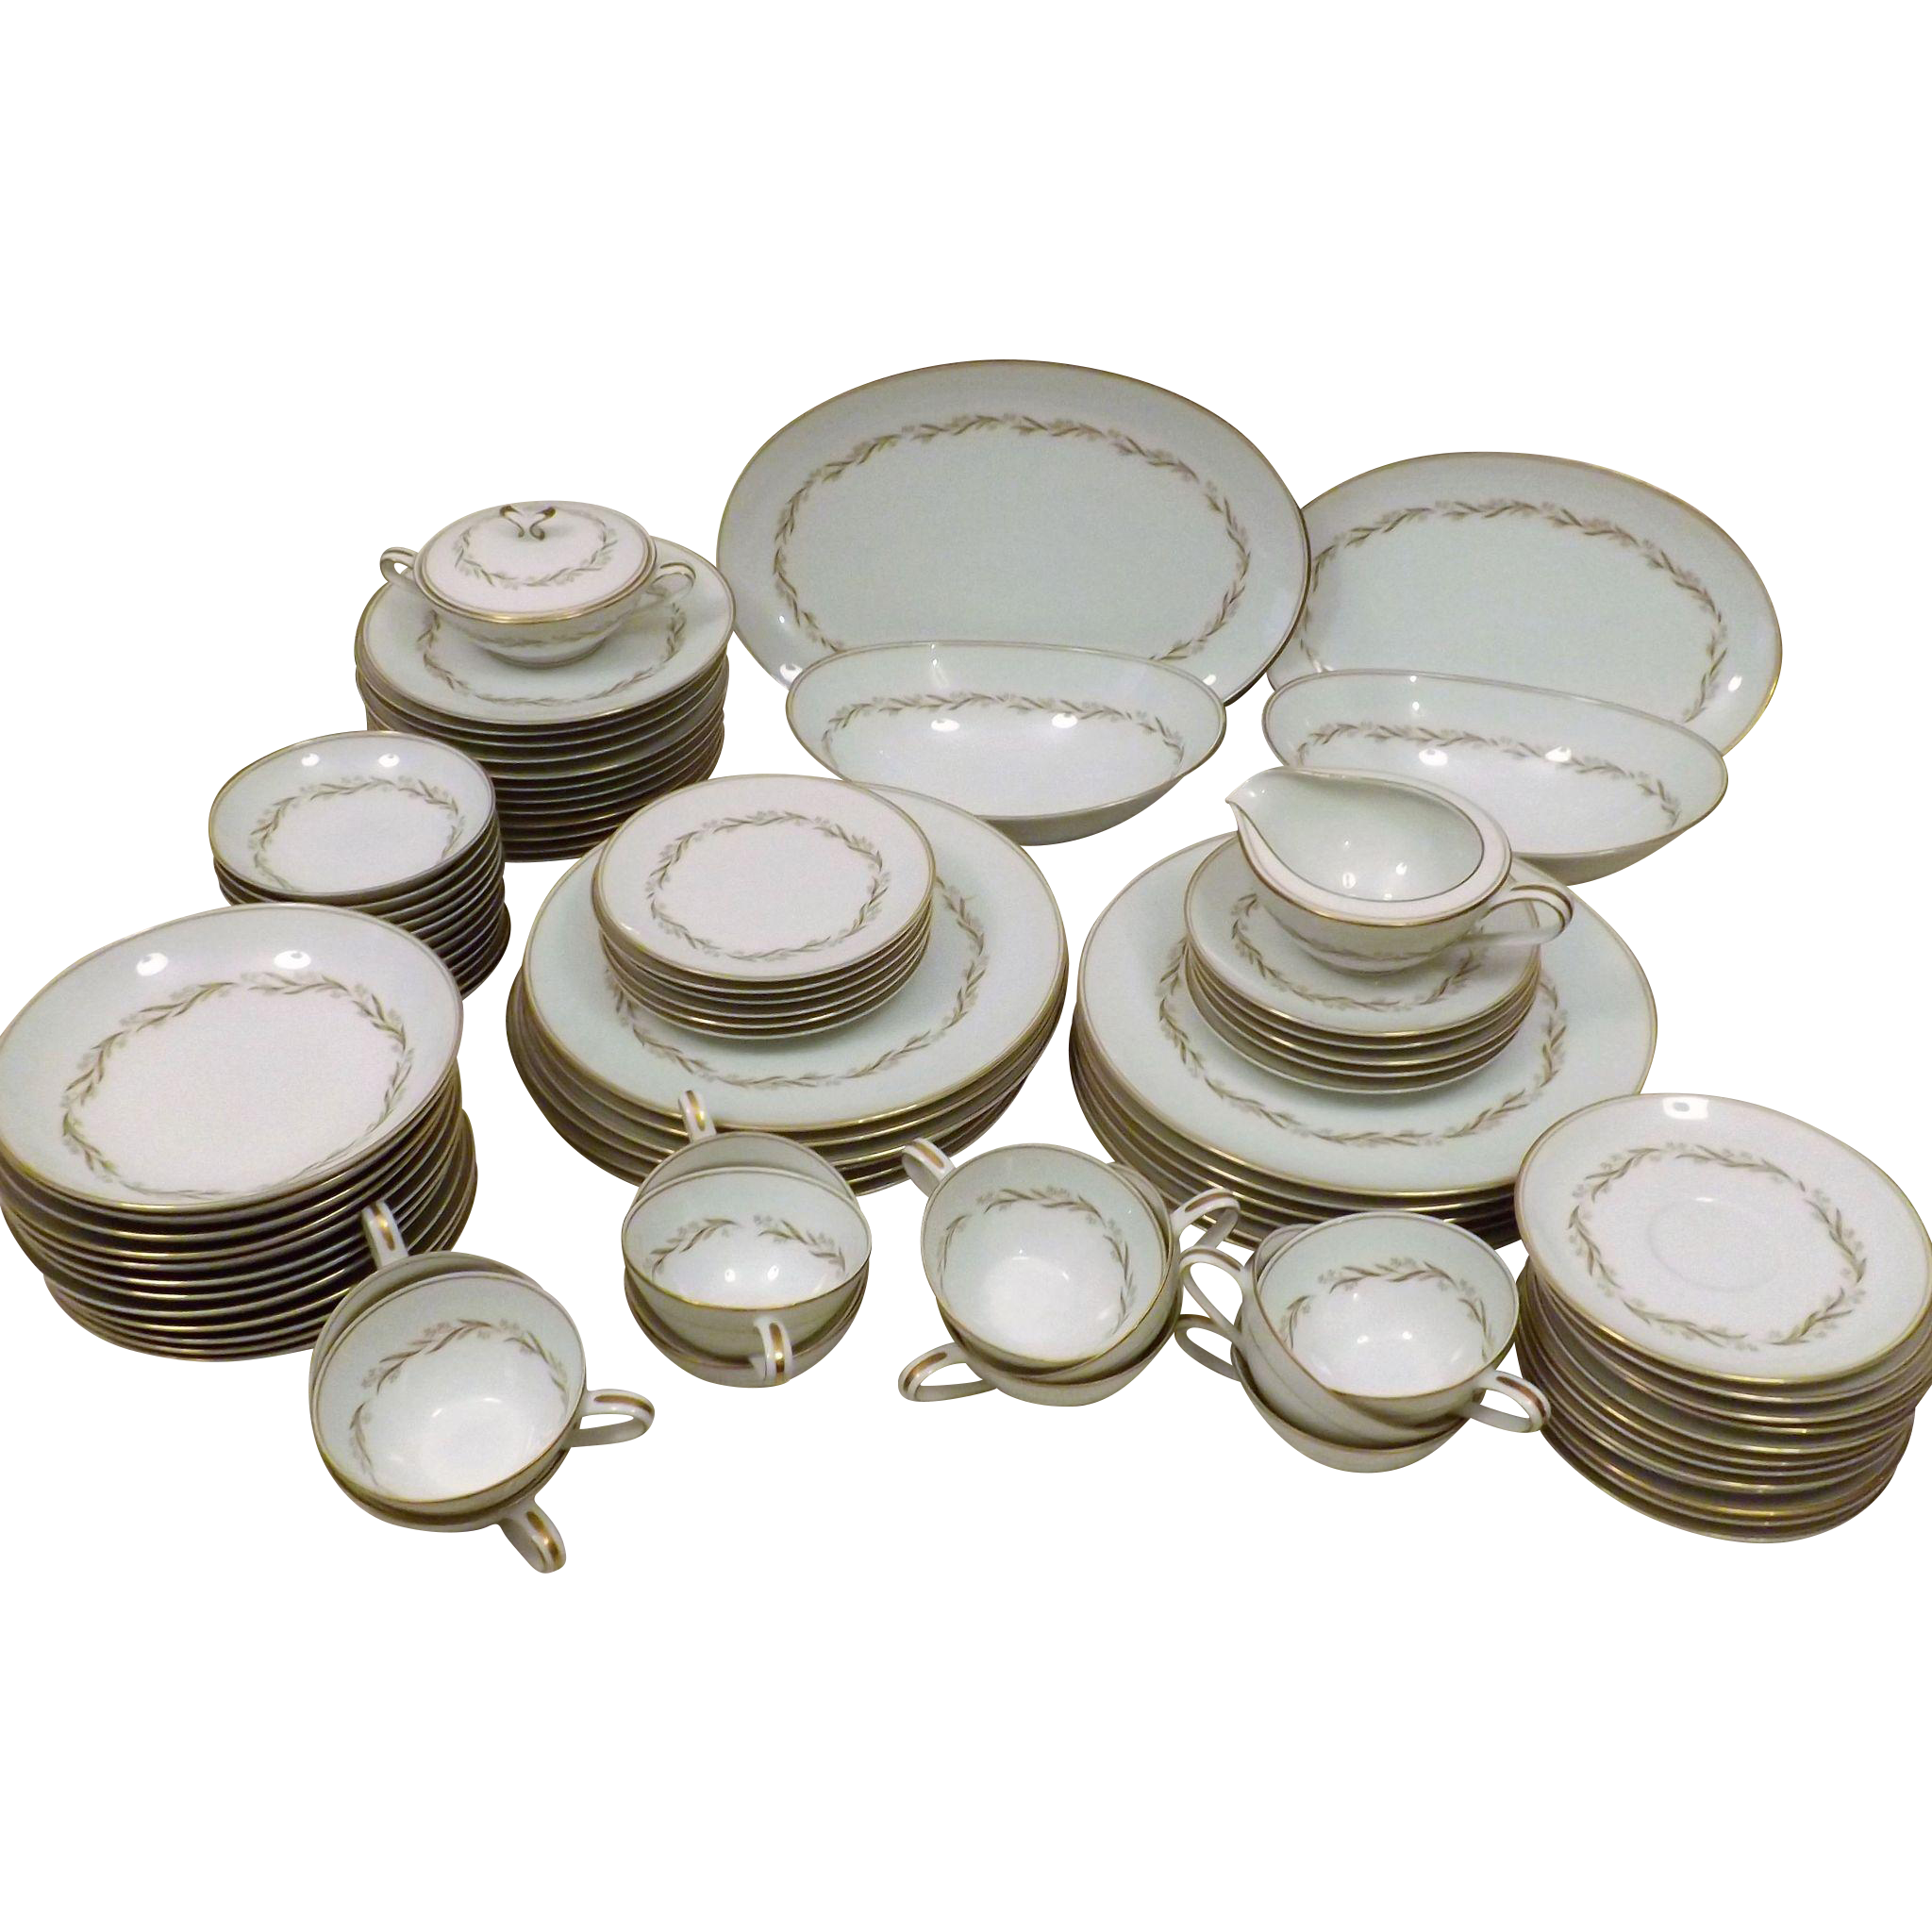 Kyoto 91 pc Japanese Fine China Dinnerware Set for 12 Royal Wheat 6062 | Products | Pinterest  sc 1 st  Pinterest & Kyoto 91 pc Japanese Fine China Dinnerware Set for 12 Royal Wheat ...